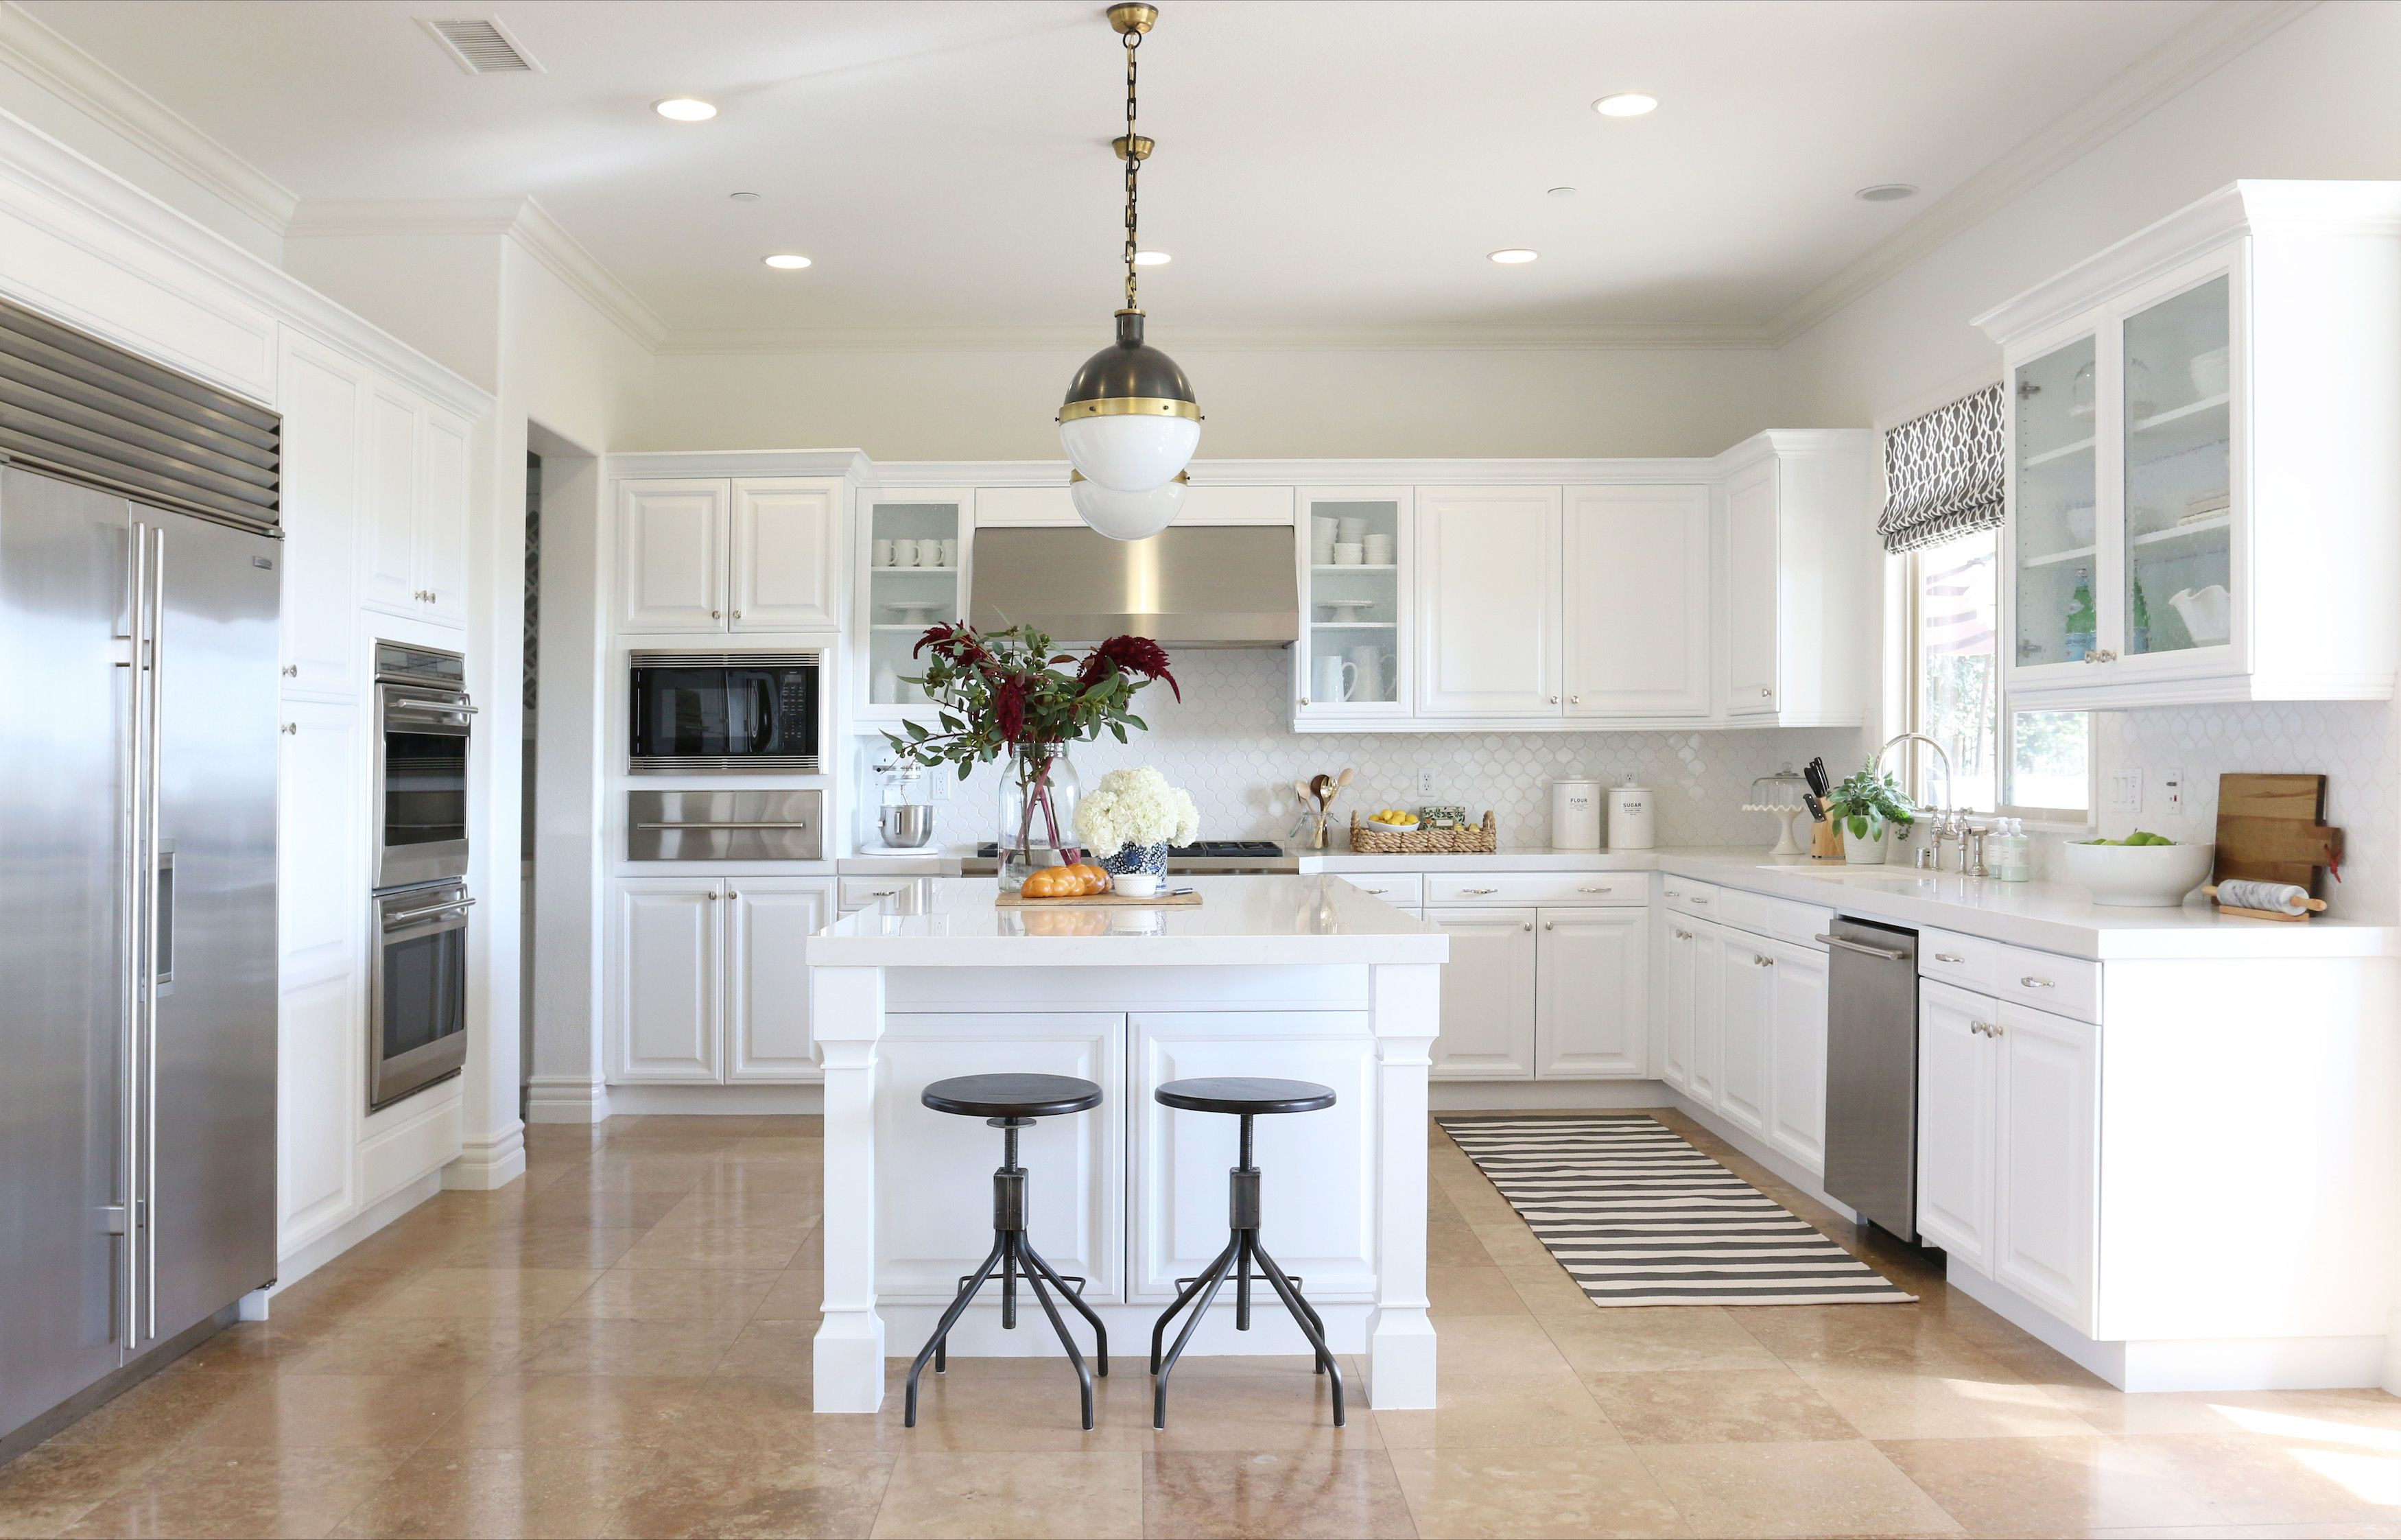 Round Metal Stools and Wide Island inside White Themed Kitchen with Clean White Kitchen Cabinets